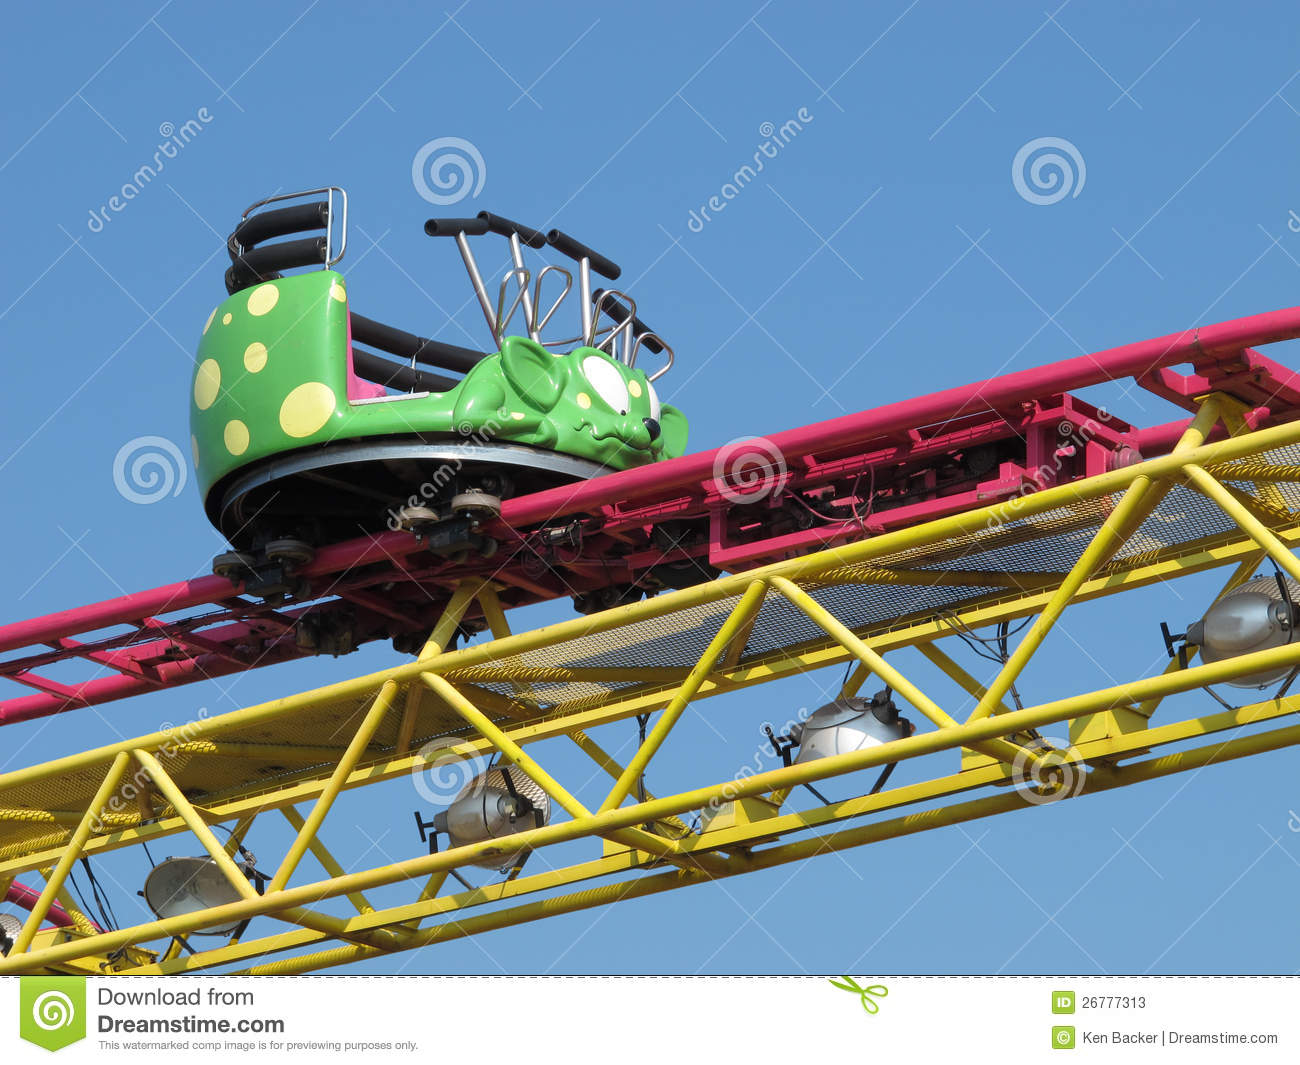 Roller Coaster Car And Track Stock Photos - Image: 26777313